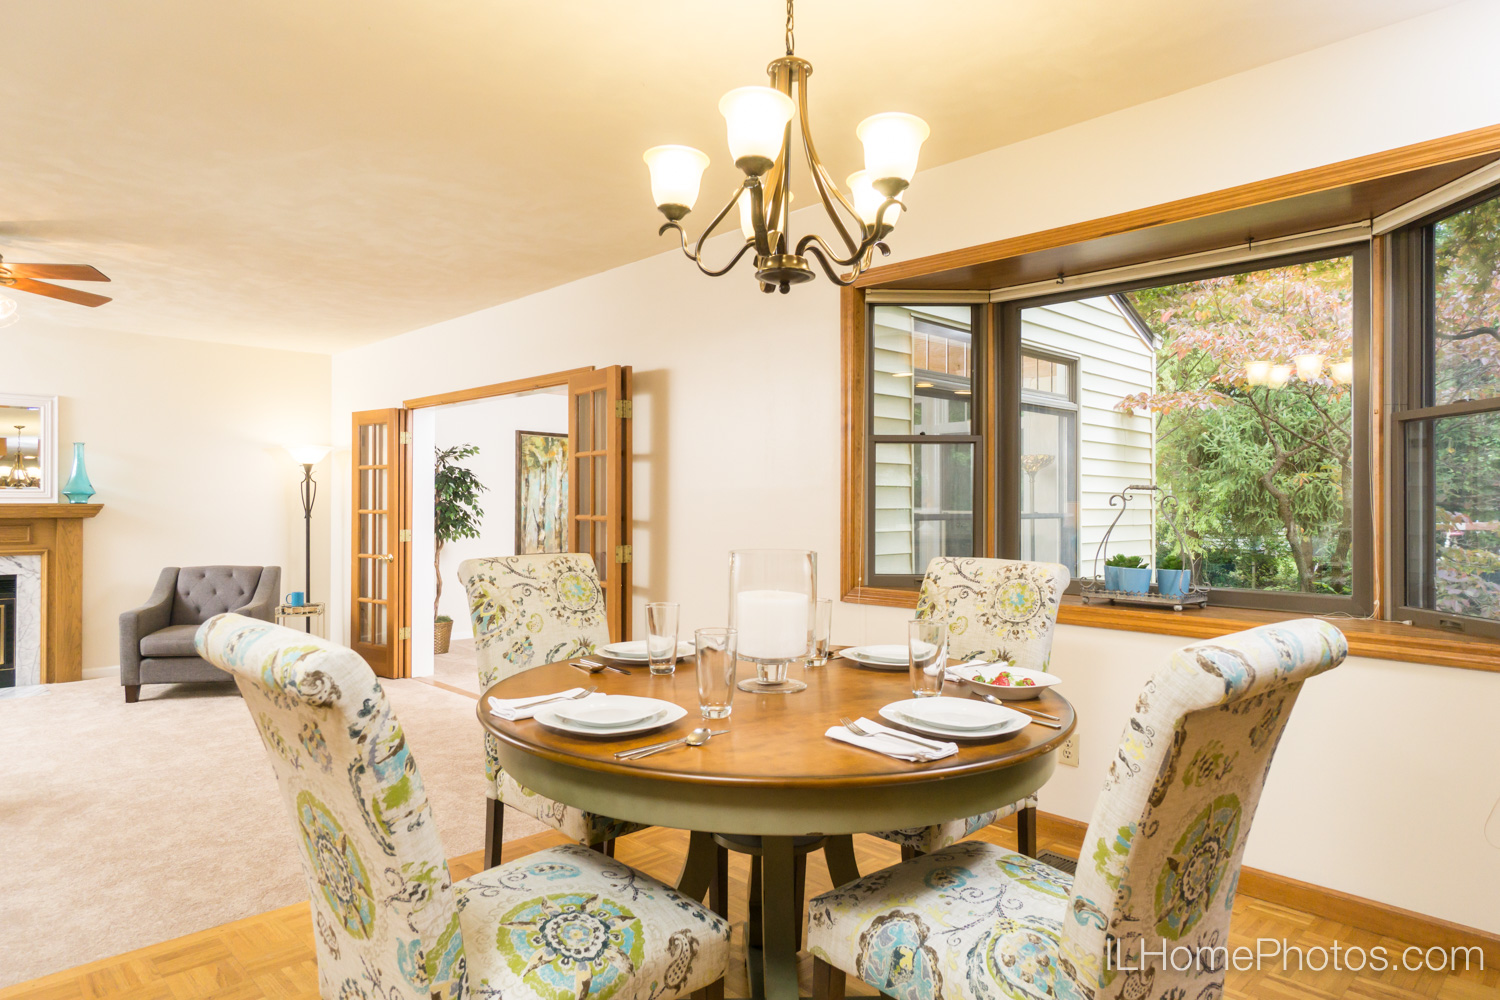 Interior dining area photograph for real estate in Peoria, IL :: Illinois Home Photography by Michael Gowin, Lincoln, IL